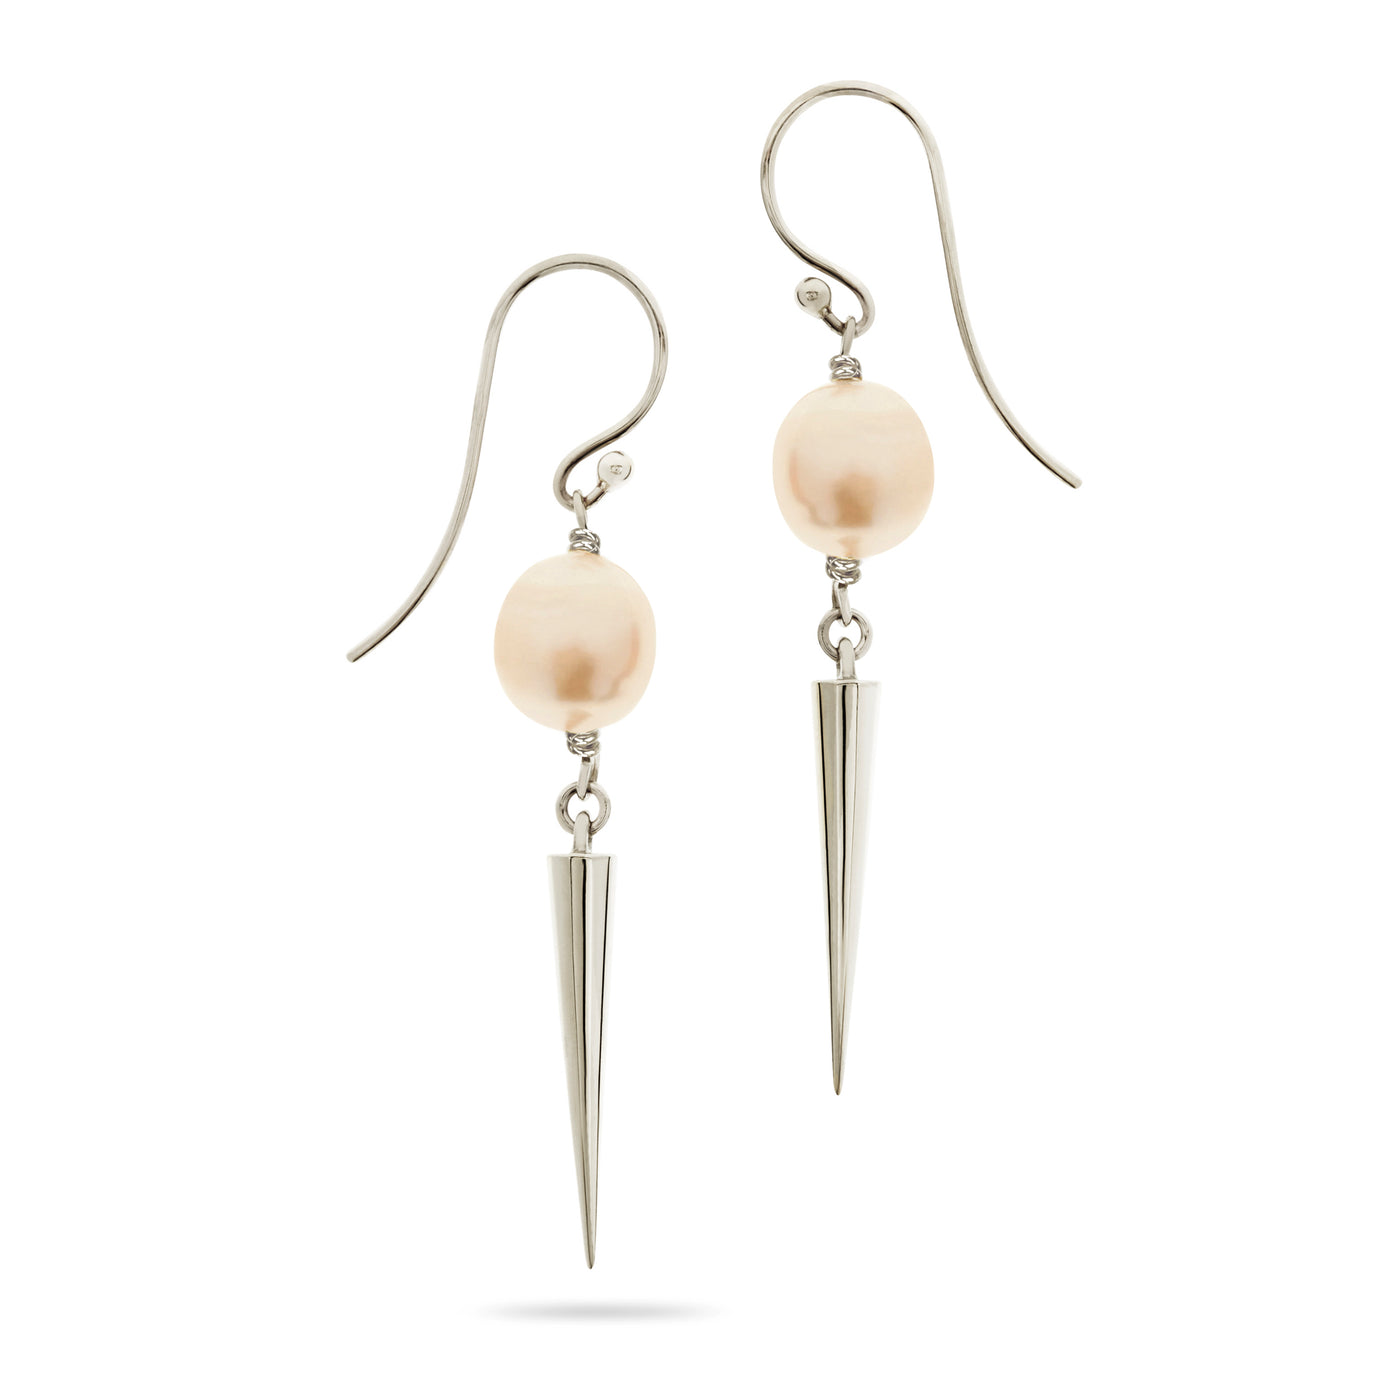 Silver and Pearl Spiked Drop Earrings by Luke Rose